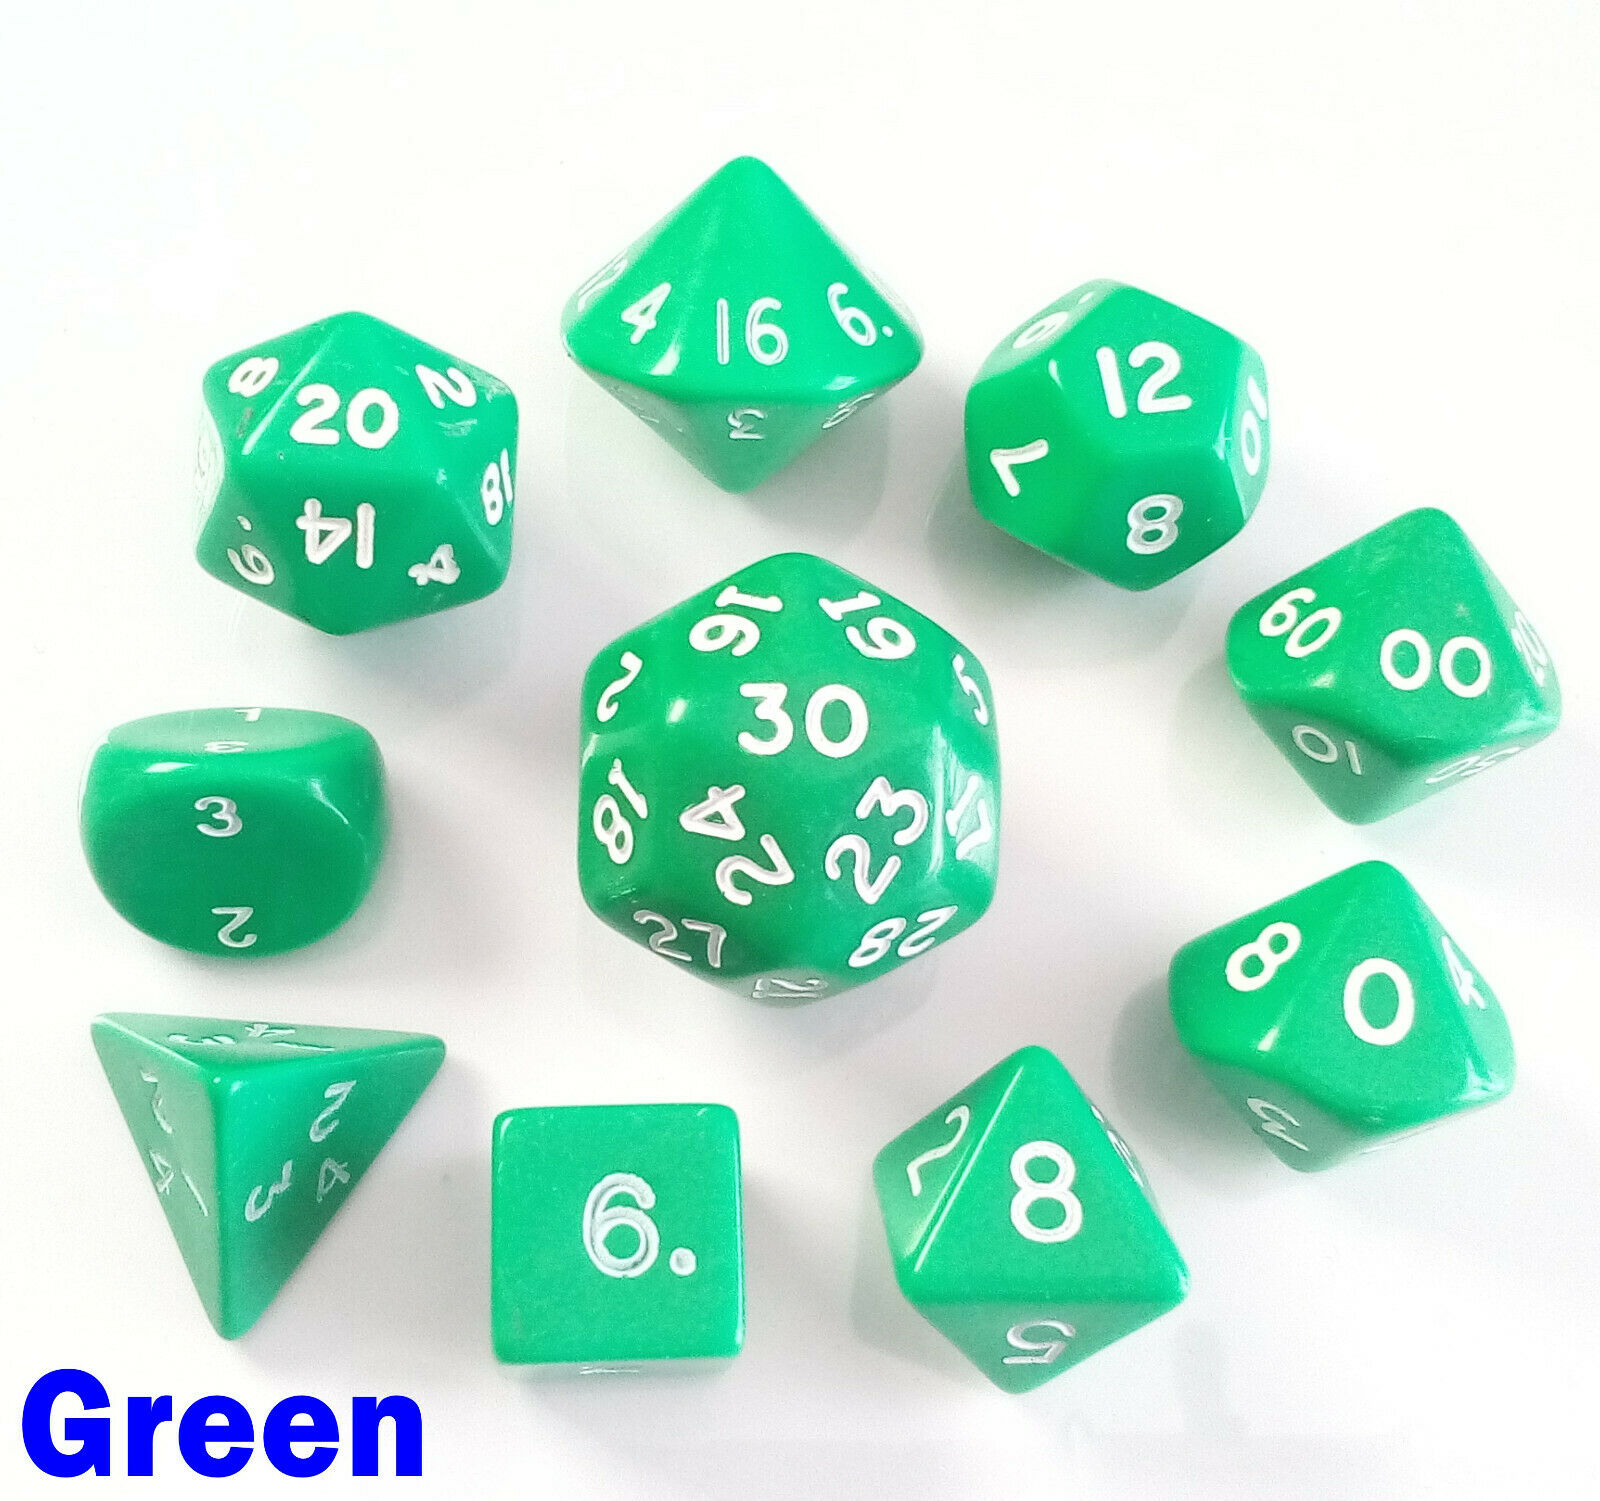 Opaque Poly D3 Dice 1 2 3 4 5 Set White 3 Sided Die Dungeons Dragons RPG 5e D/&D